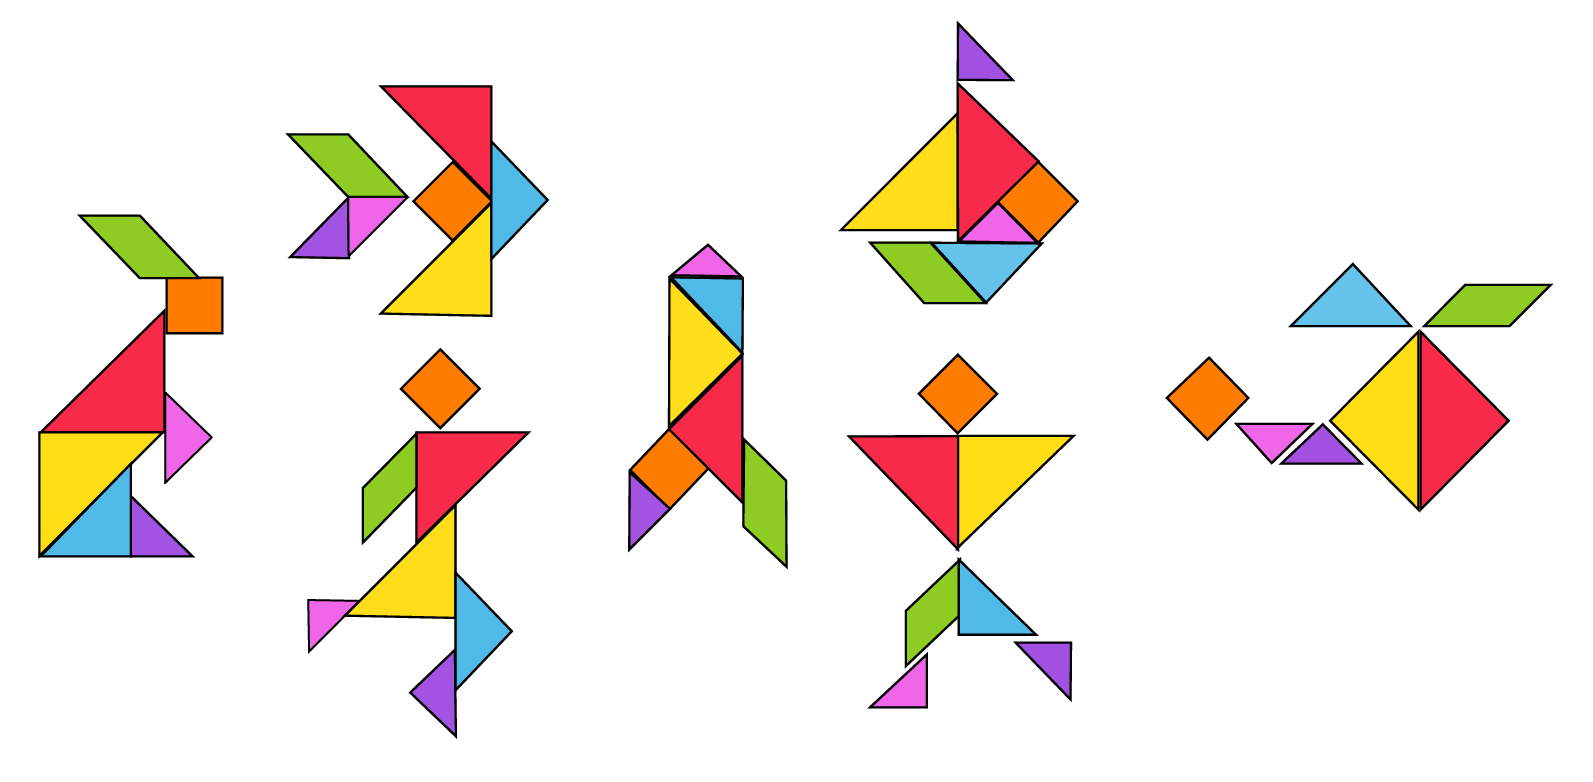 hight resolution of Learn about Geometric shapes and their properties - Cuemath